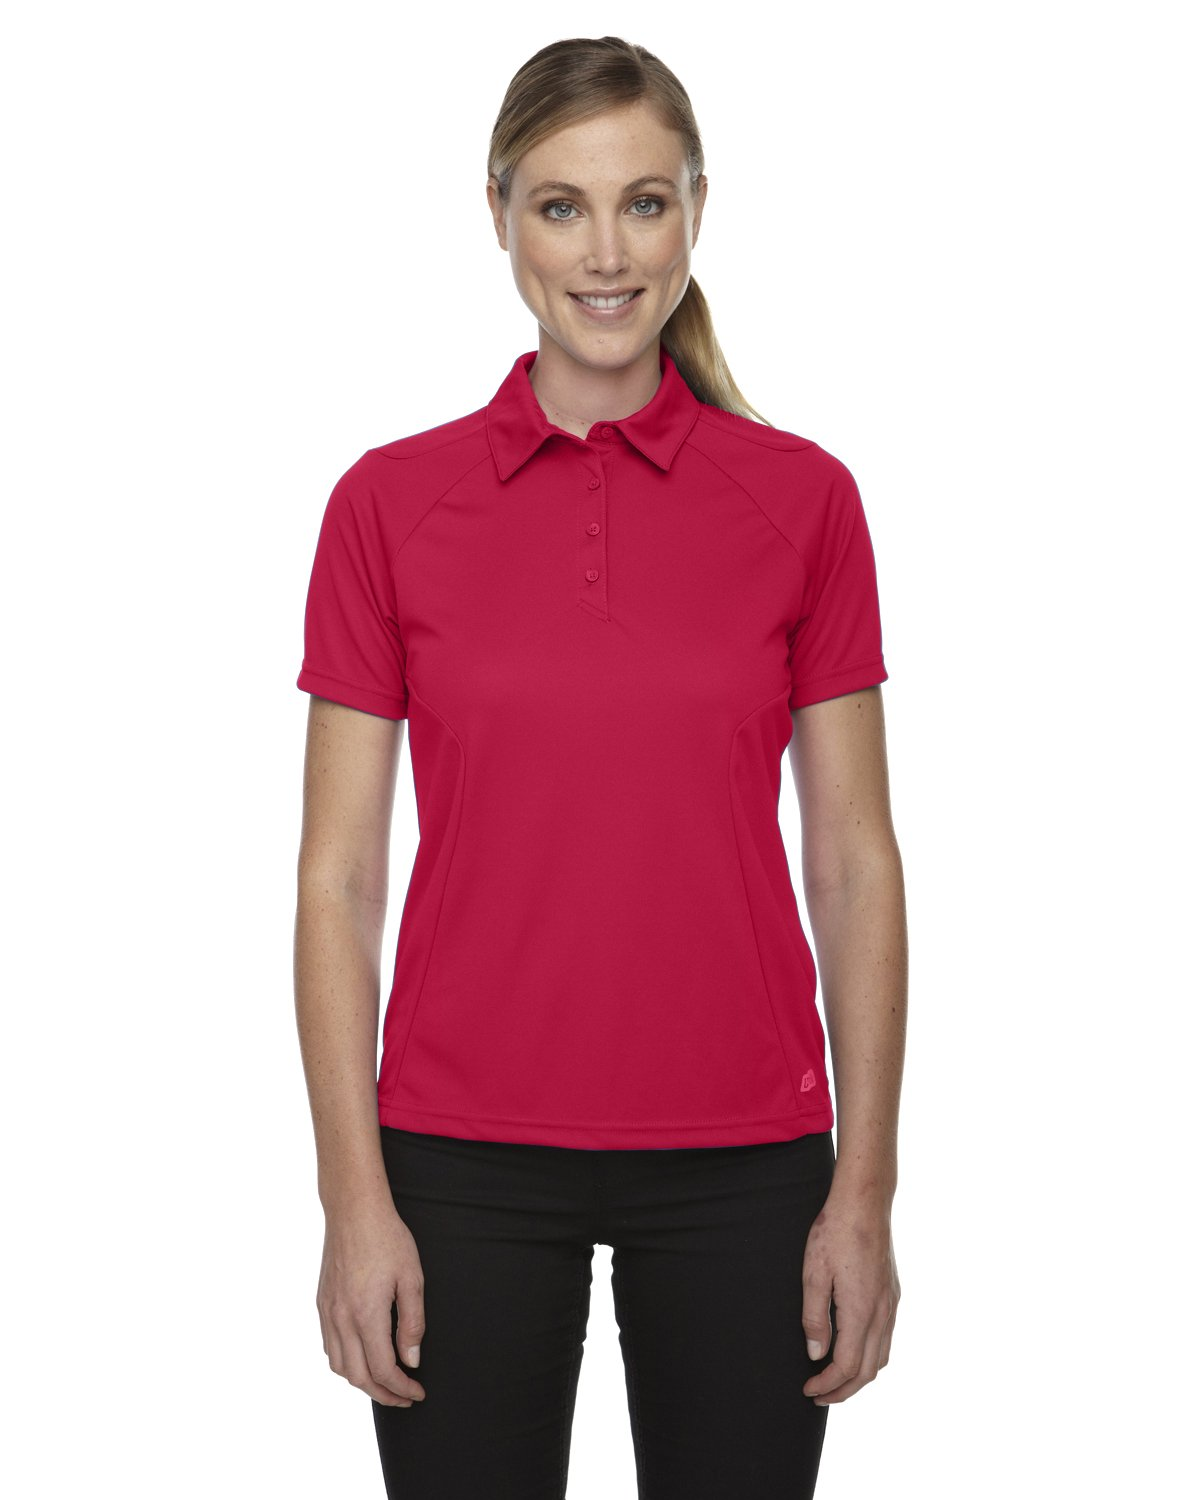 Ash City Womens Dolomite Performance Polo (Small, Olympic Red) by Ash City Apparel